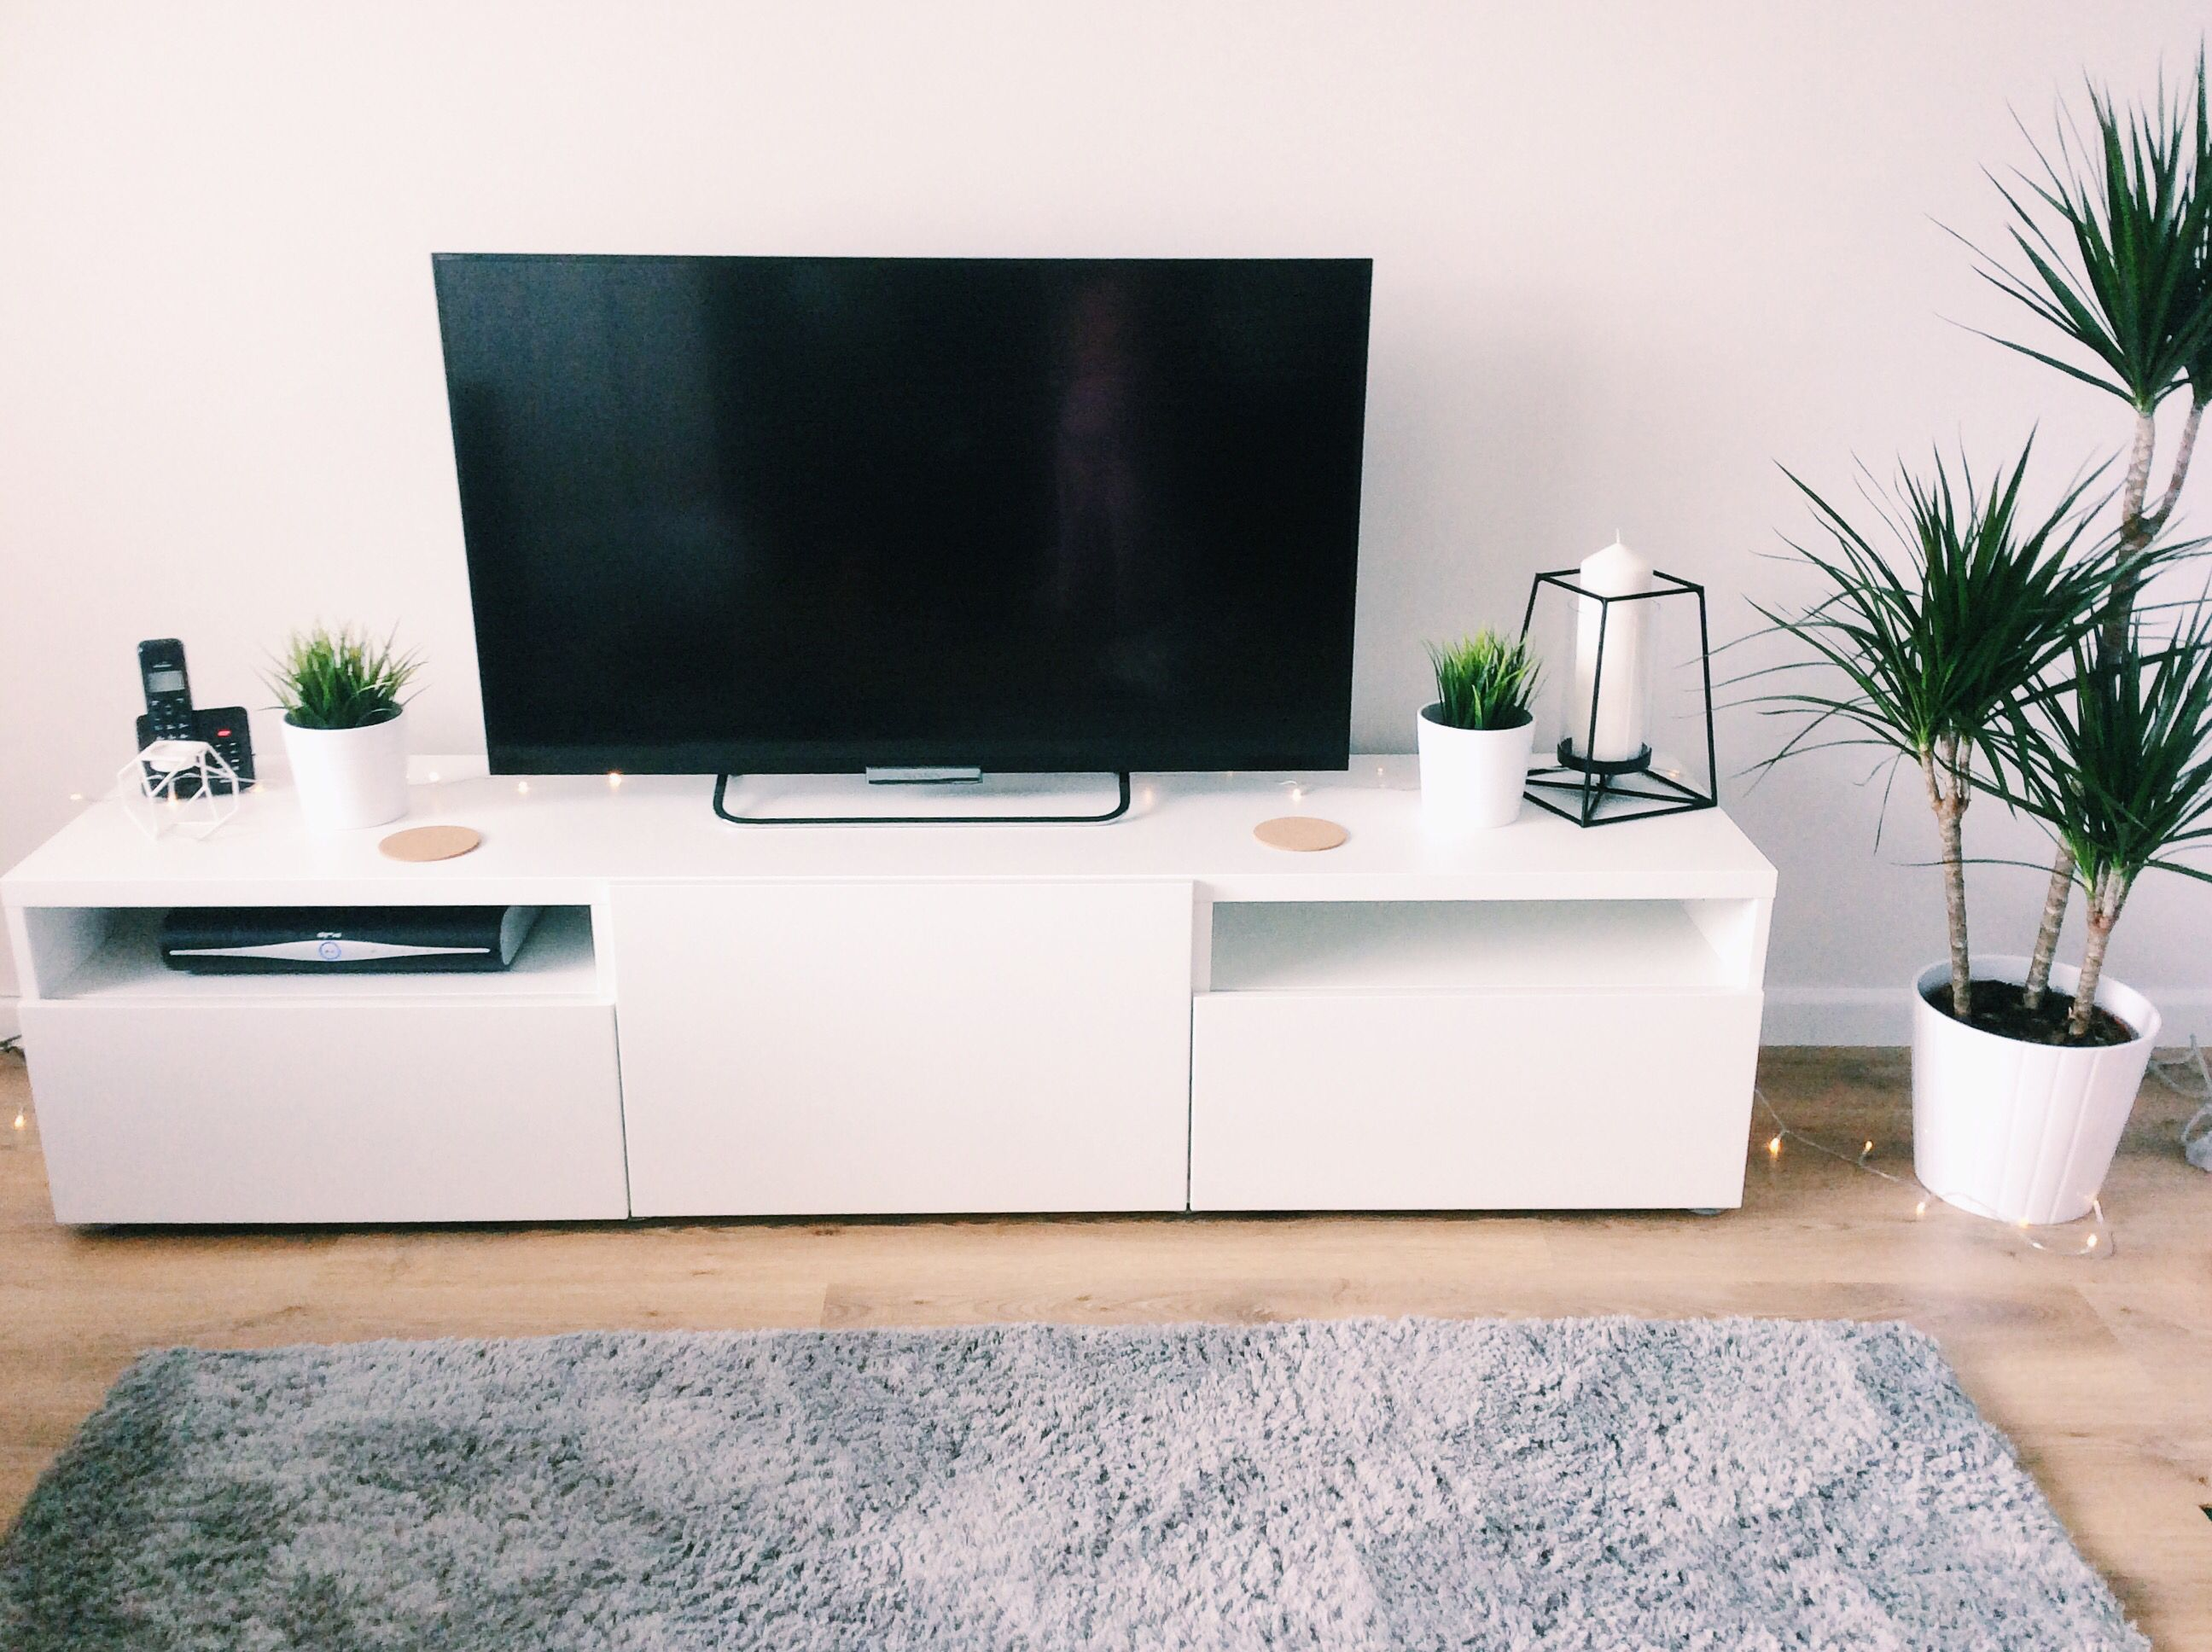 ikea besta tv stand hack with two lack shelves above natasha